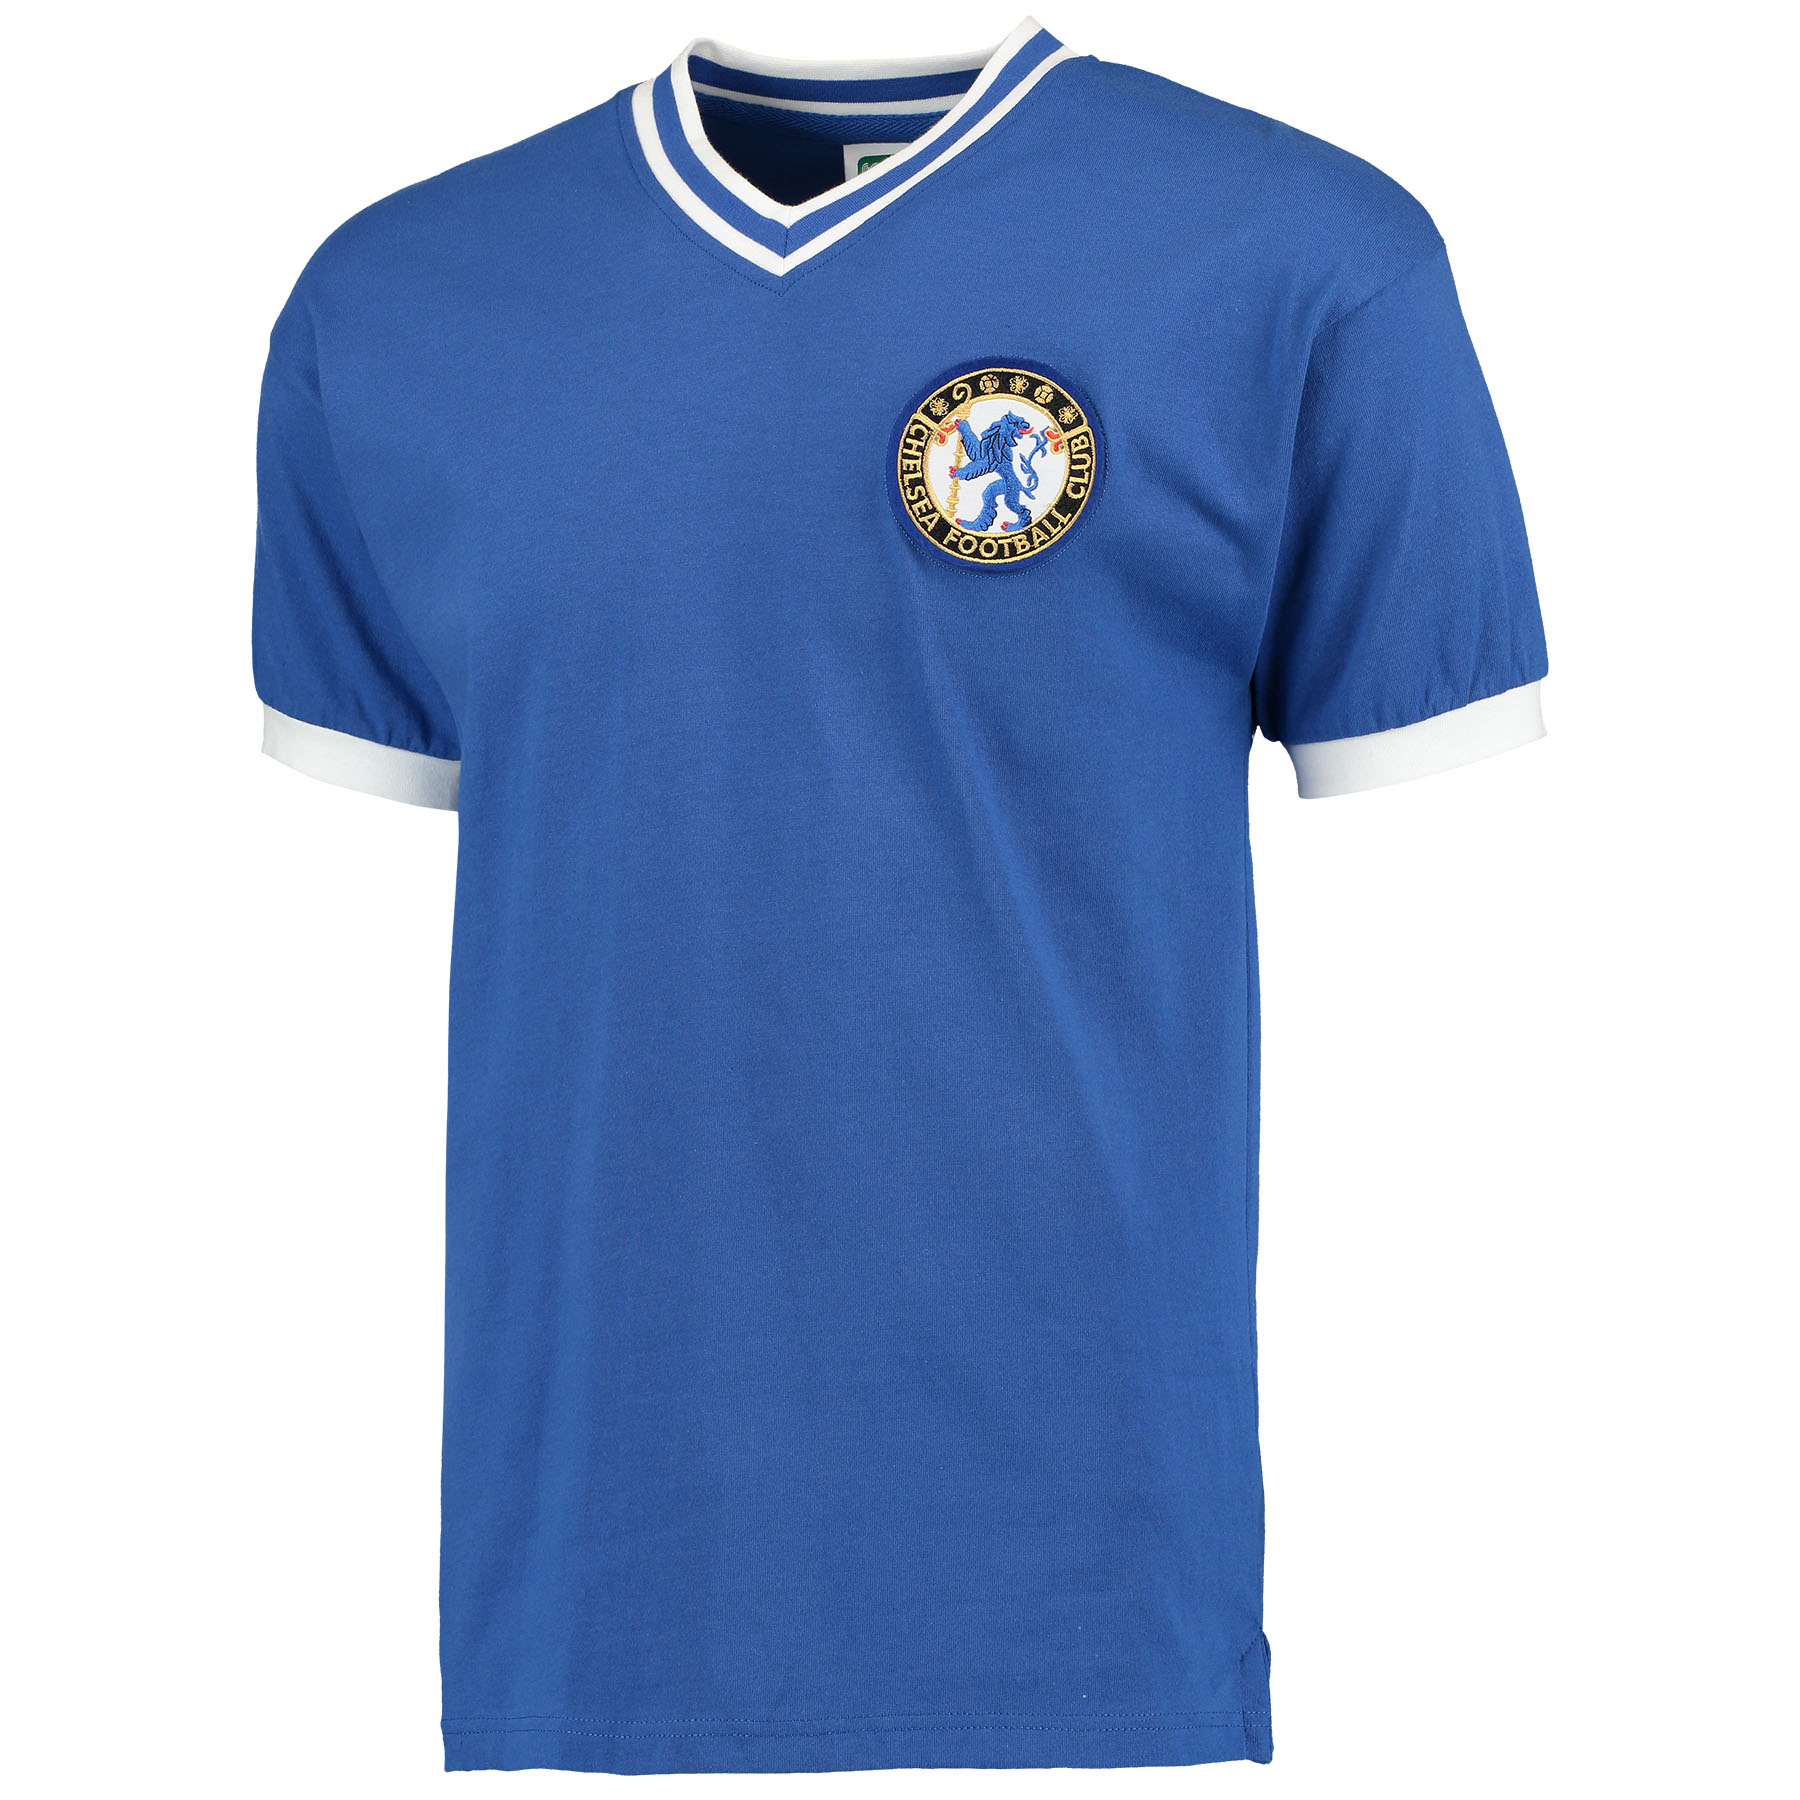 Chelsea 1960 No8 shirt   Jimmy Greaves scored on his Chelsea debut in an opening day 1-1 draw at Tottenham Hotspur at the start of the 1957-58 season. In all, he scored 132 goals in 164 games for Chelsea. In his final season at Stamford Bridge in 1960-61 Greaves scored 41 league goals in the 40 league games he appeared in, and every one of them whilst wearing the No8 shirt.